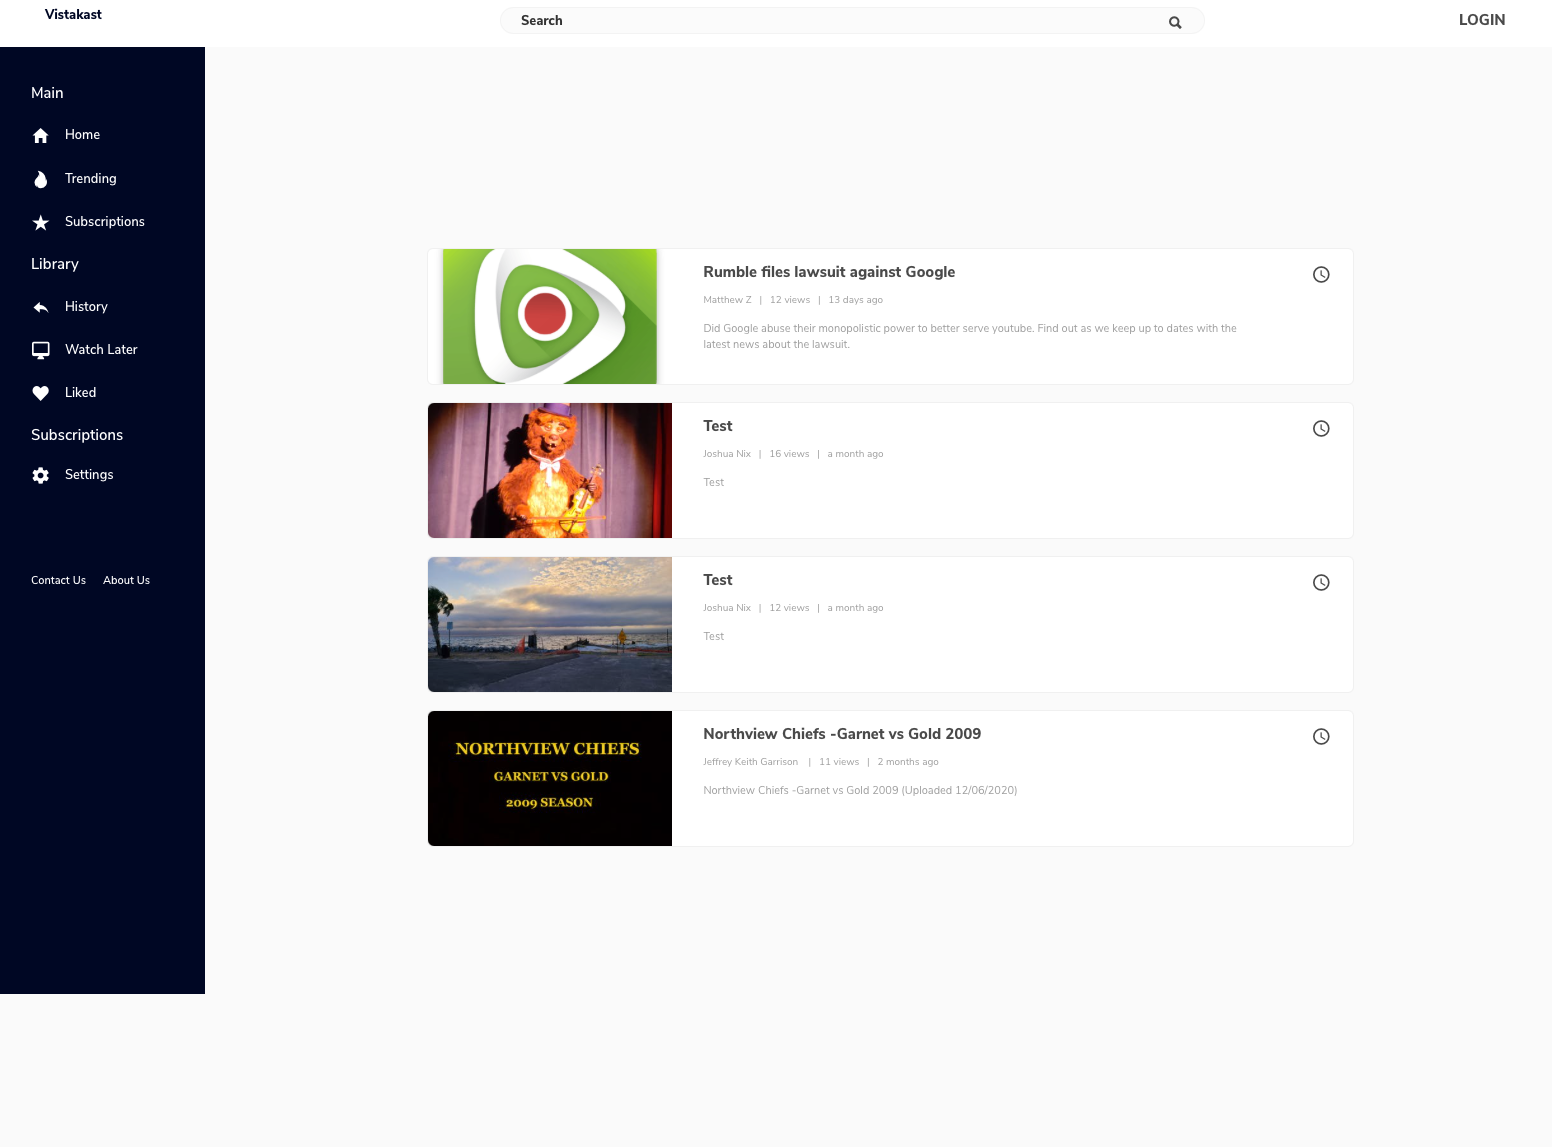 Users can upload content, view trending posts, subscribe, view their history, and more.